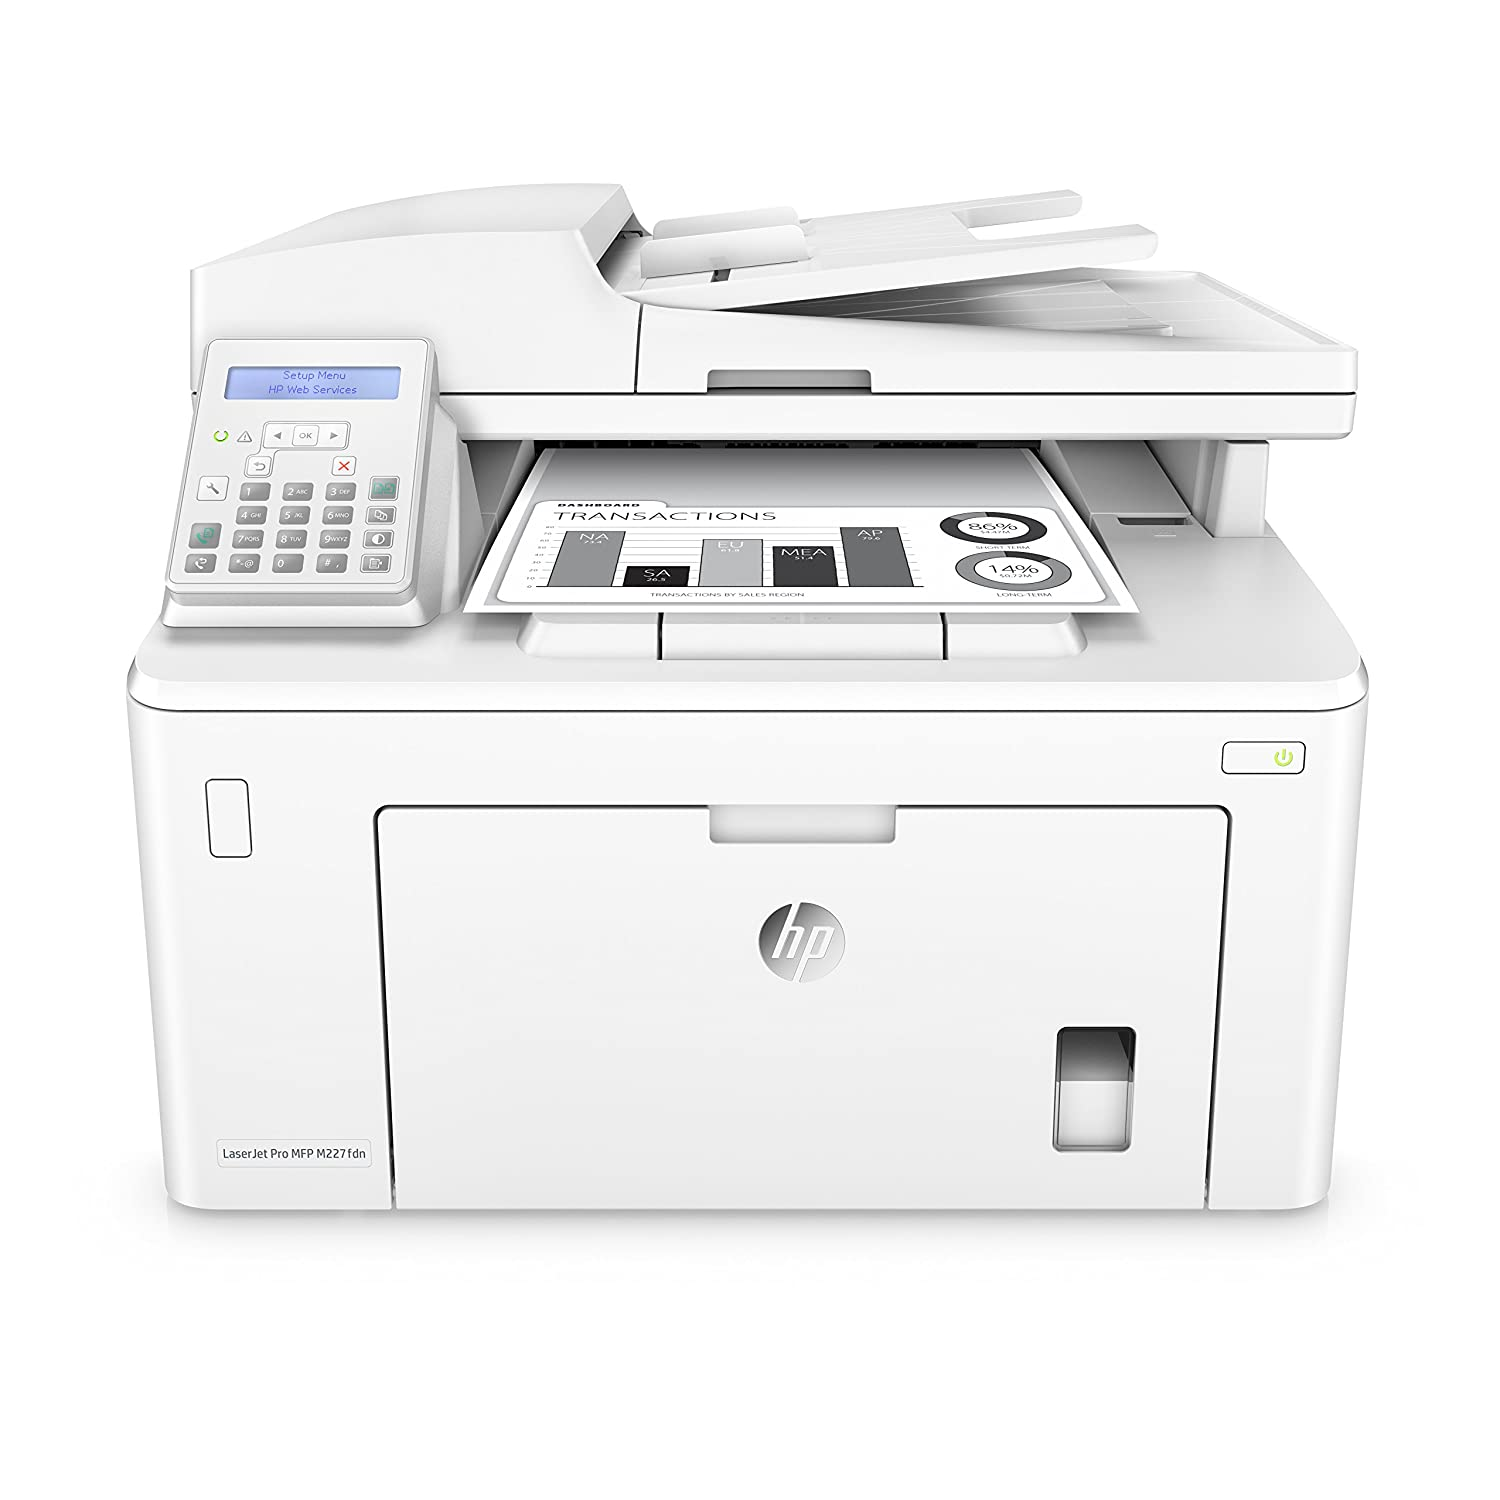 HP LaserJet Pro M227fdn All in One Laser Printer with Print Security,  Amazon Dash Replenishment ready (G3Q79A)  Replaces HP M225dn Laser Printer